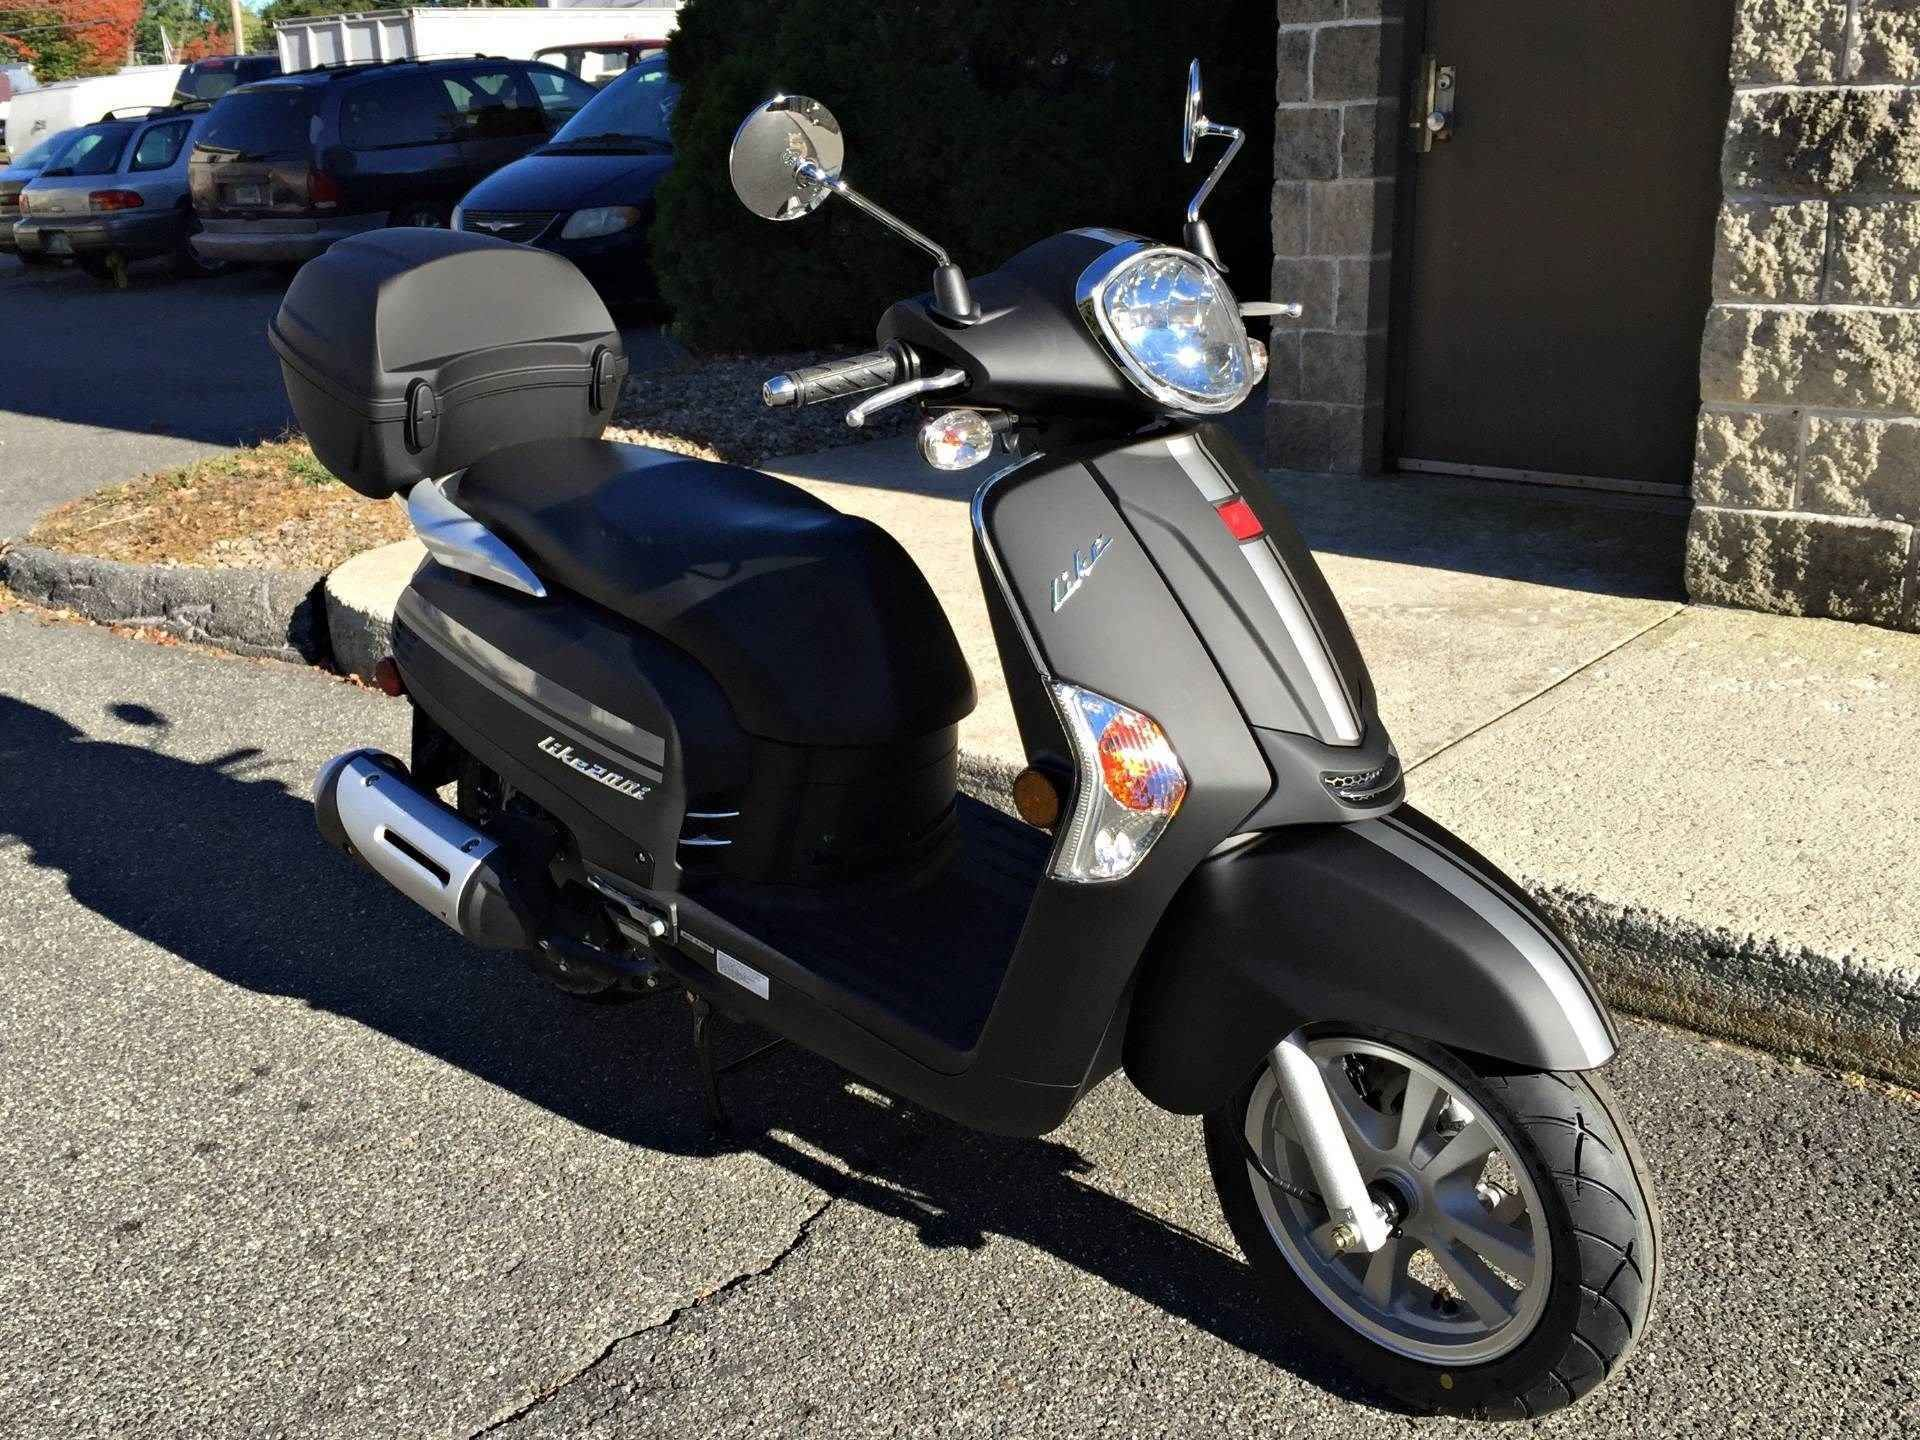 2017 Kymco Like 200i In Black Scooter Bike Motorsport Black